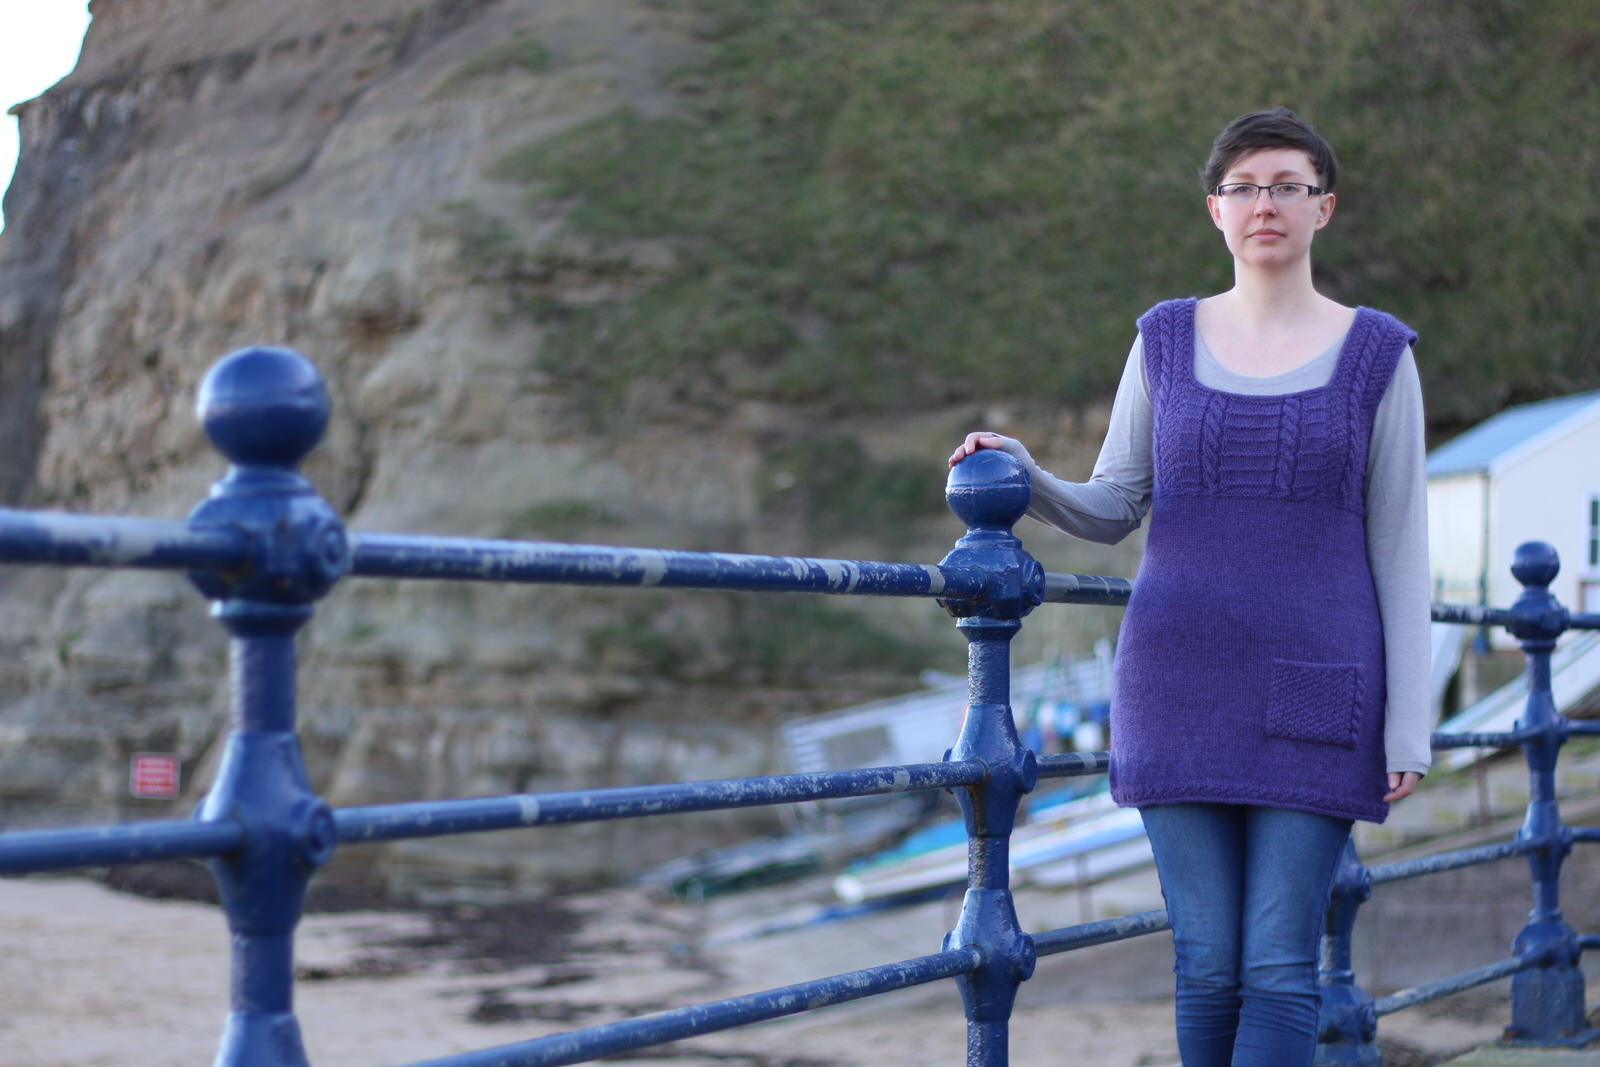 Withernsea Tunic  A tunic with cable straps and pocket detail, sized for adults (above) and children (right)   Yarn: Dovestone DK (252 yds / 230m in 100g)  Yarn Quantities: 1006 - 1761 yards (920 - 1610 m)   Needles:  3.75mm x 60-80cm circular and 4.0mm 60-80cm circular  Notions: cable needle, stitch markers